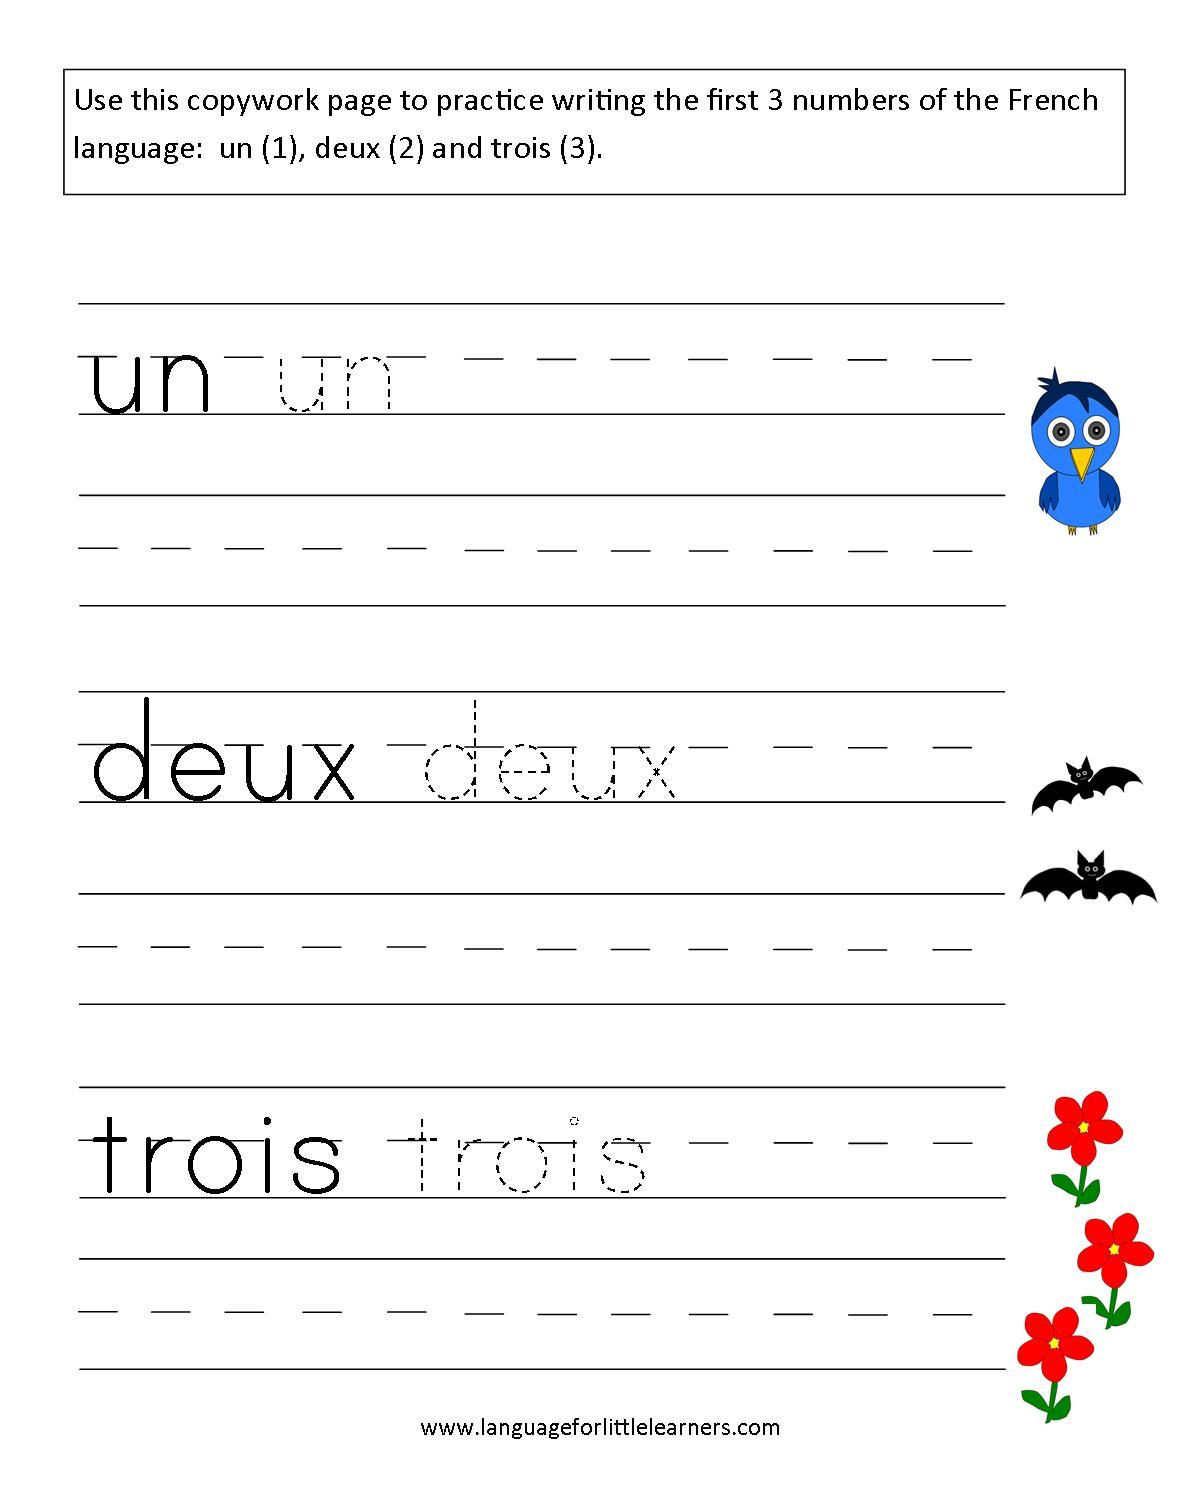 French Printable Worksheets Language for Little Learners November 2011